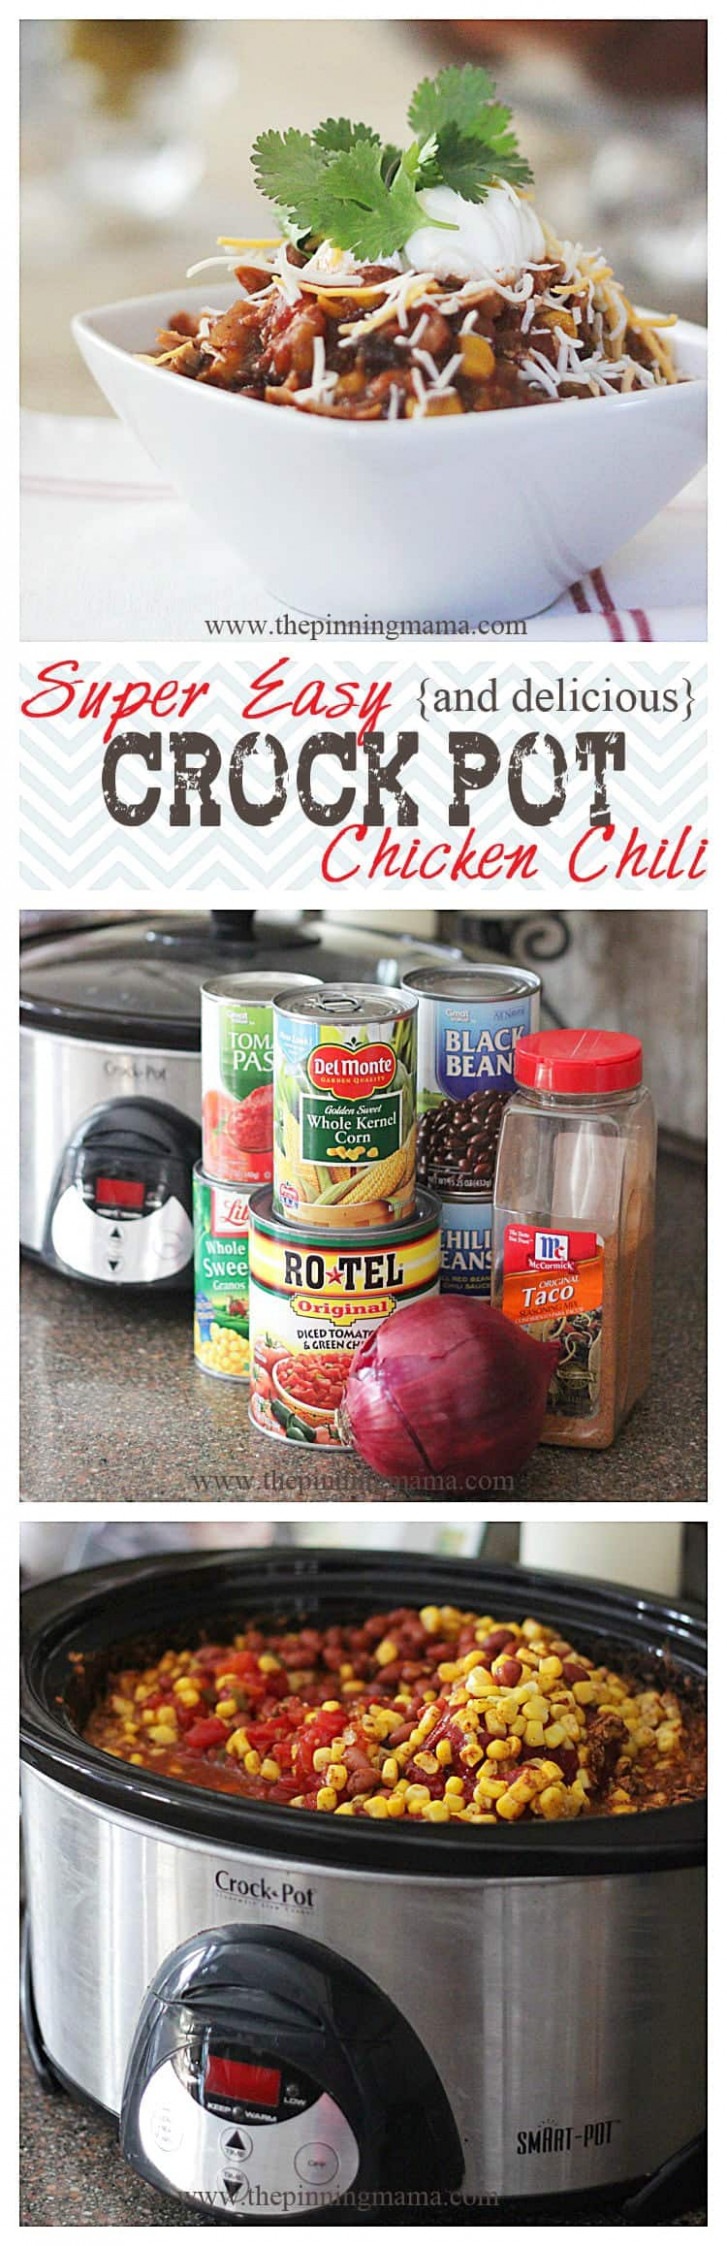 Easy and Delicious Crock Pot Chicken Chili | The Pinning Mama - easy crock pot recipes chicken